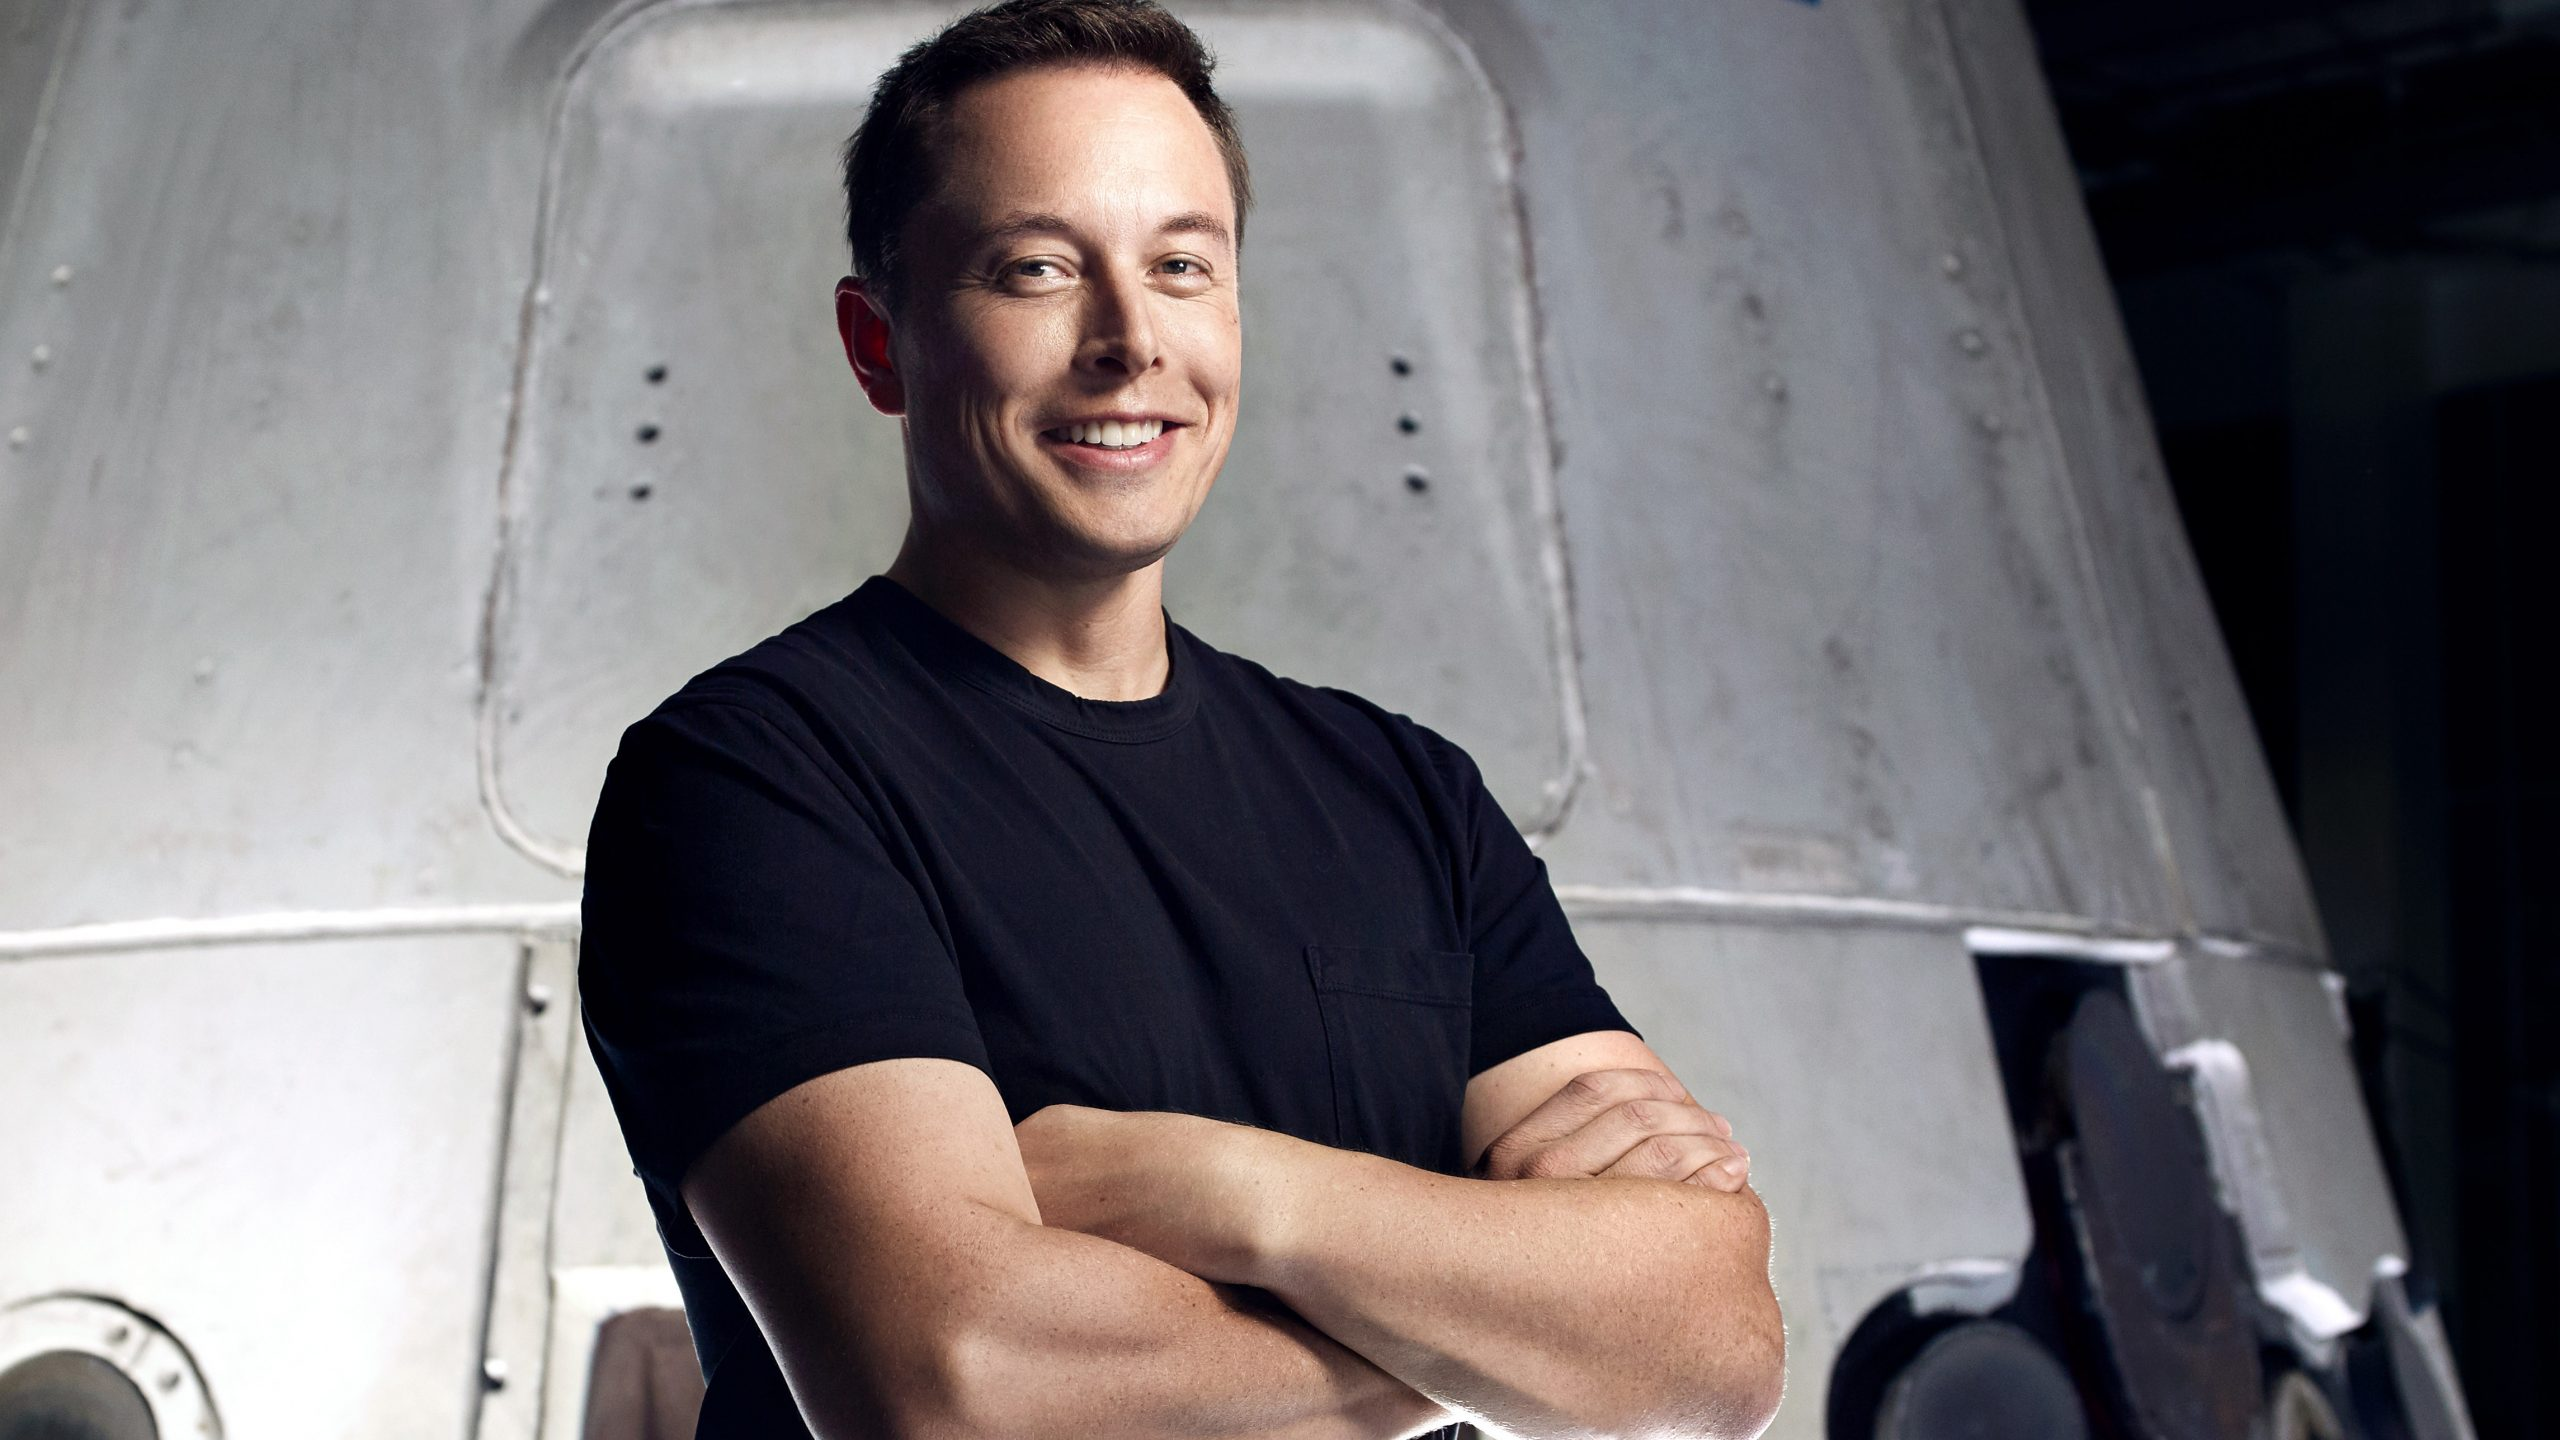 Elon Musk becomes the world's second richest person